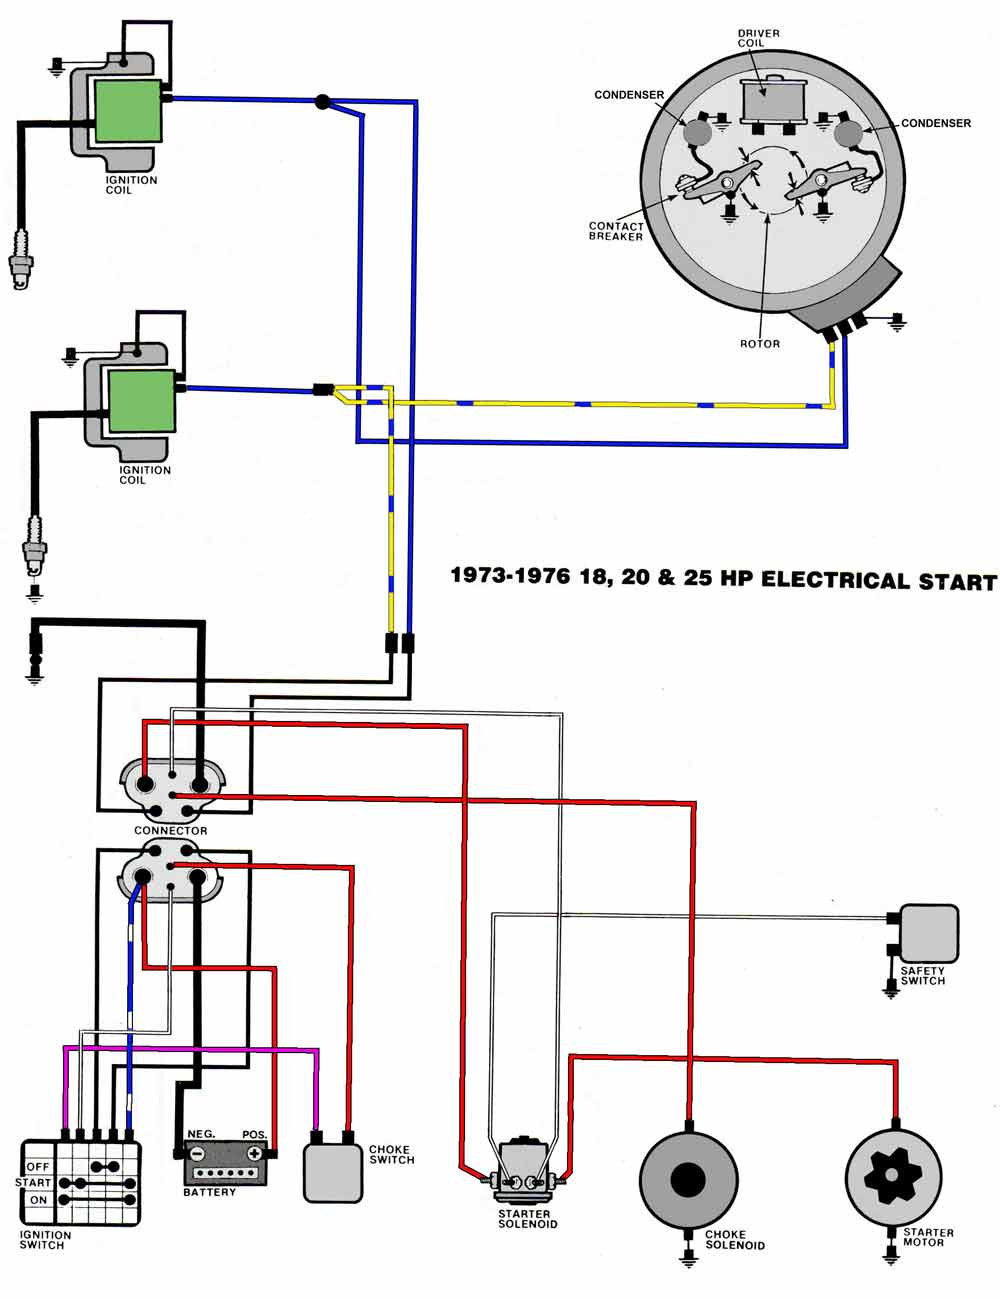 medium resolution of evinrude 1970 25 hp how do i wire the starter solenoid battery page 1976 omc starter wiring diagram